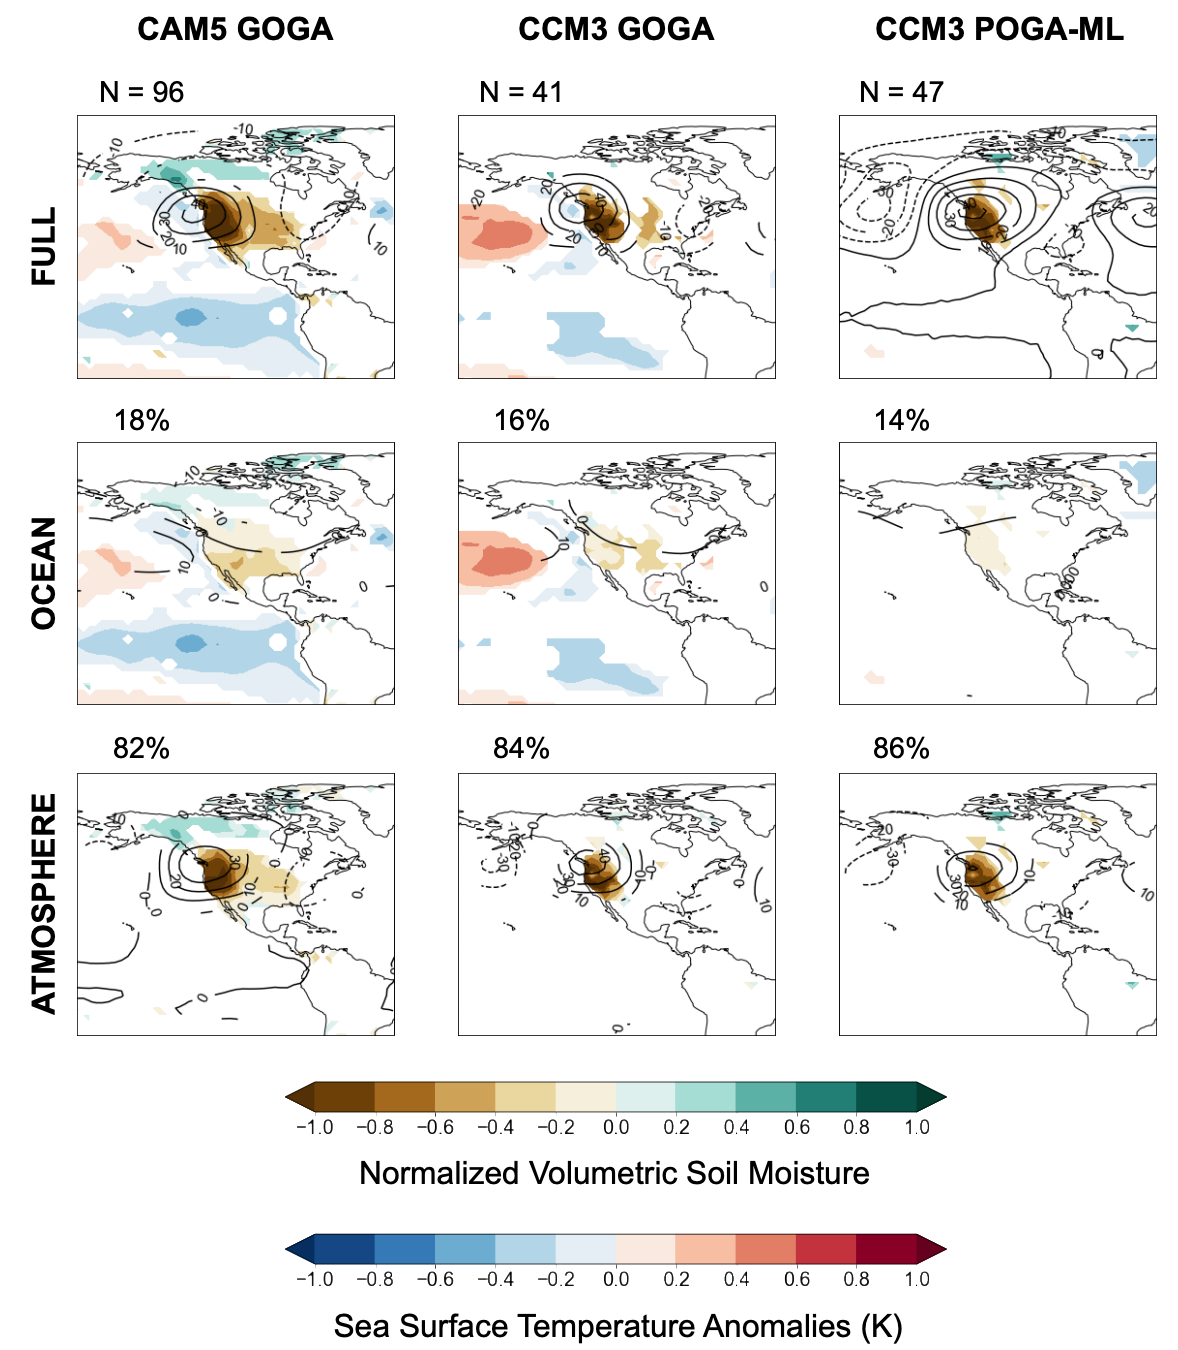 (top row) Composites of pan-coastal droughts defined by JJA soil moisture and their concurrent water year DJF SSTs and 500 mb height anomalies across the (left) CAM5 GOGA, (middle) CCM3 GOGA, and (right) CCM3 POGA-ML ensembles during 1856 – 2012.